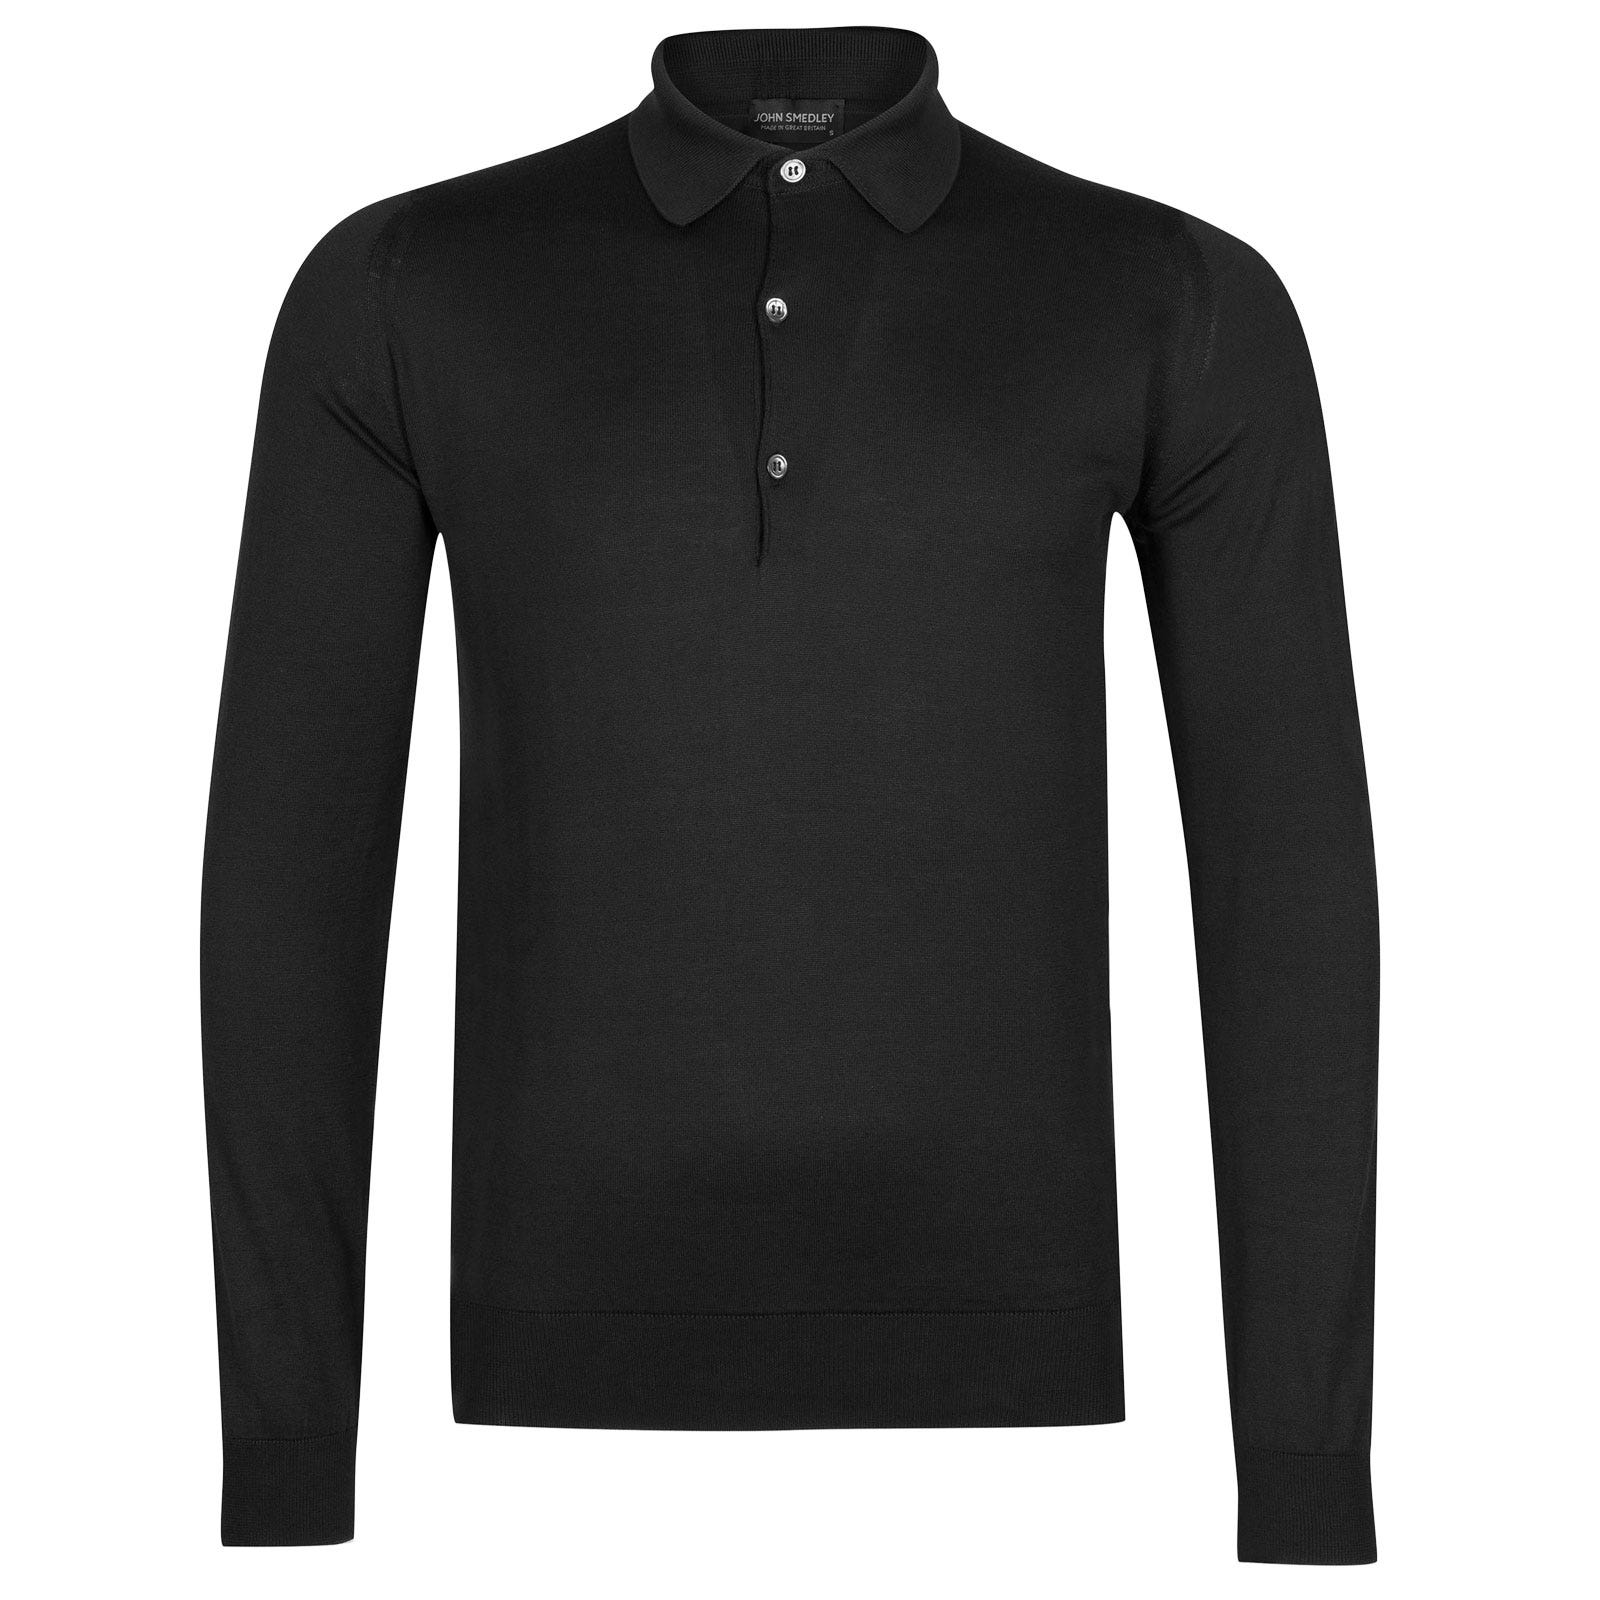 John Smedley bradwell Sea Island Cotton Shirt in Black-S